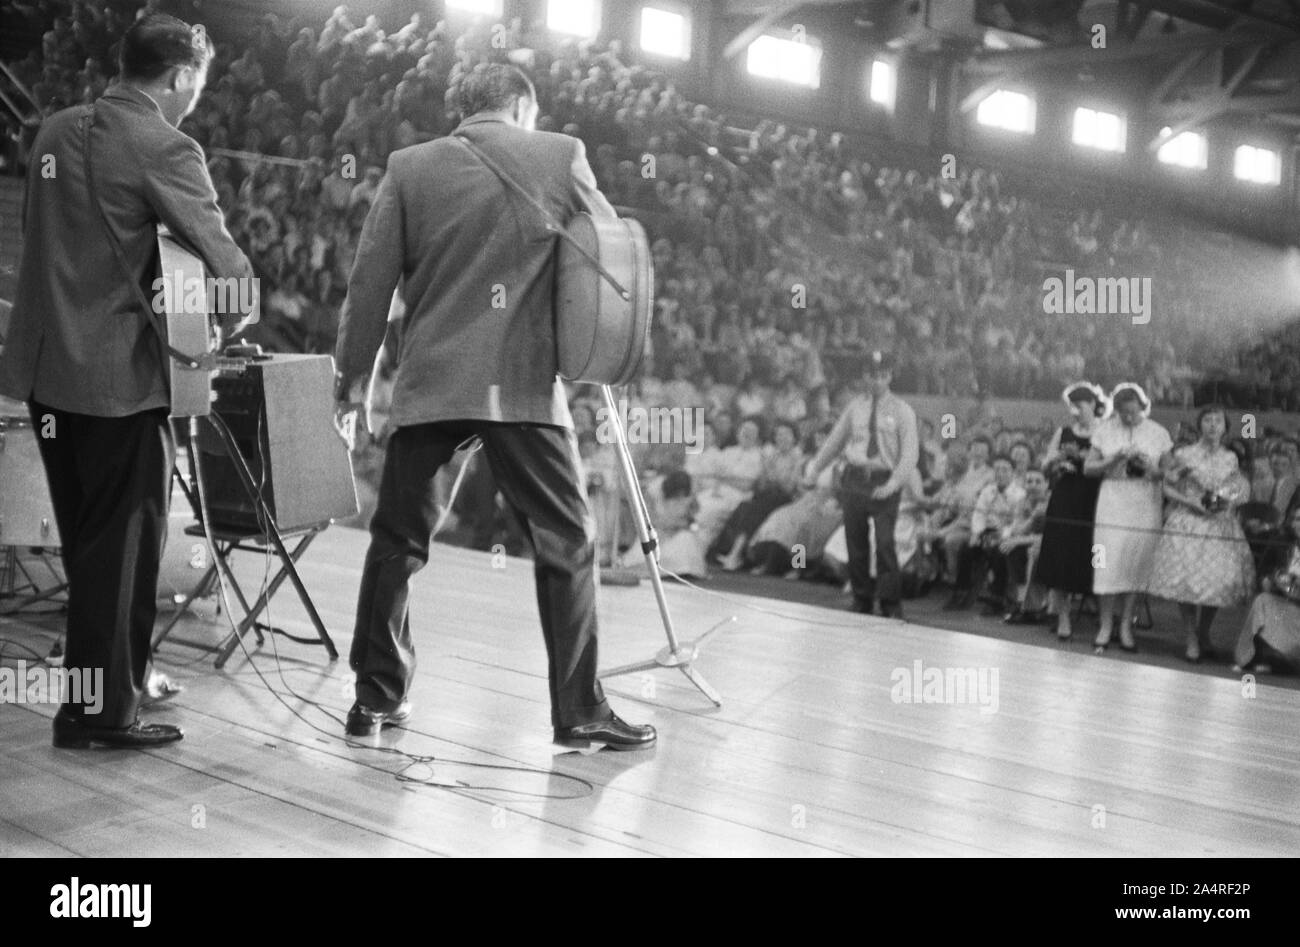 Elvis Presley during a performance at the University of Dayton Fieldhouse, May 27, 1956. Stock Photo